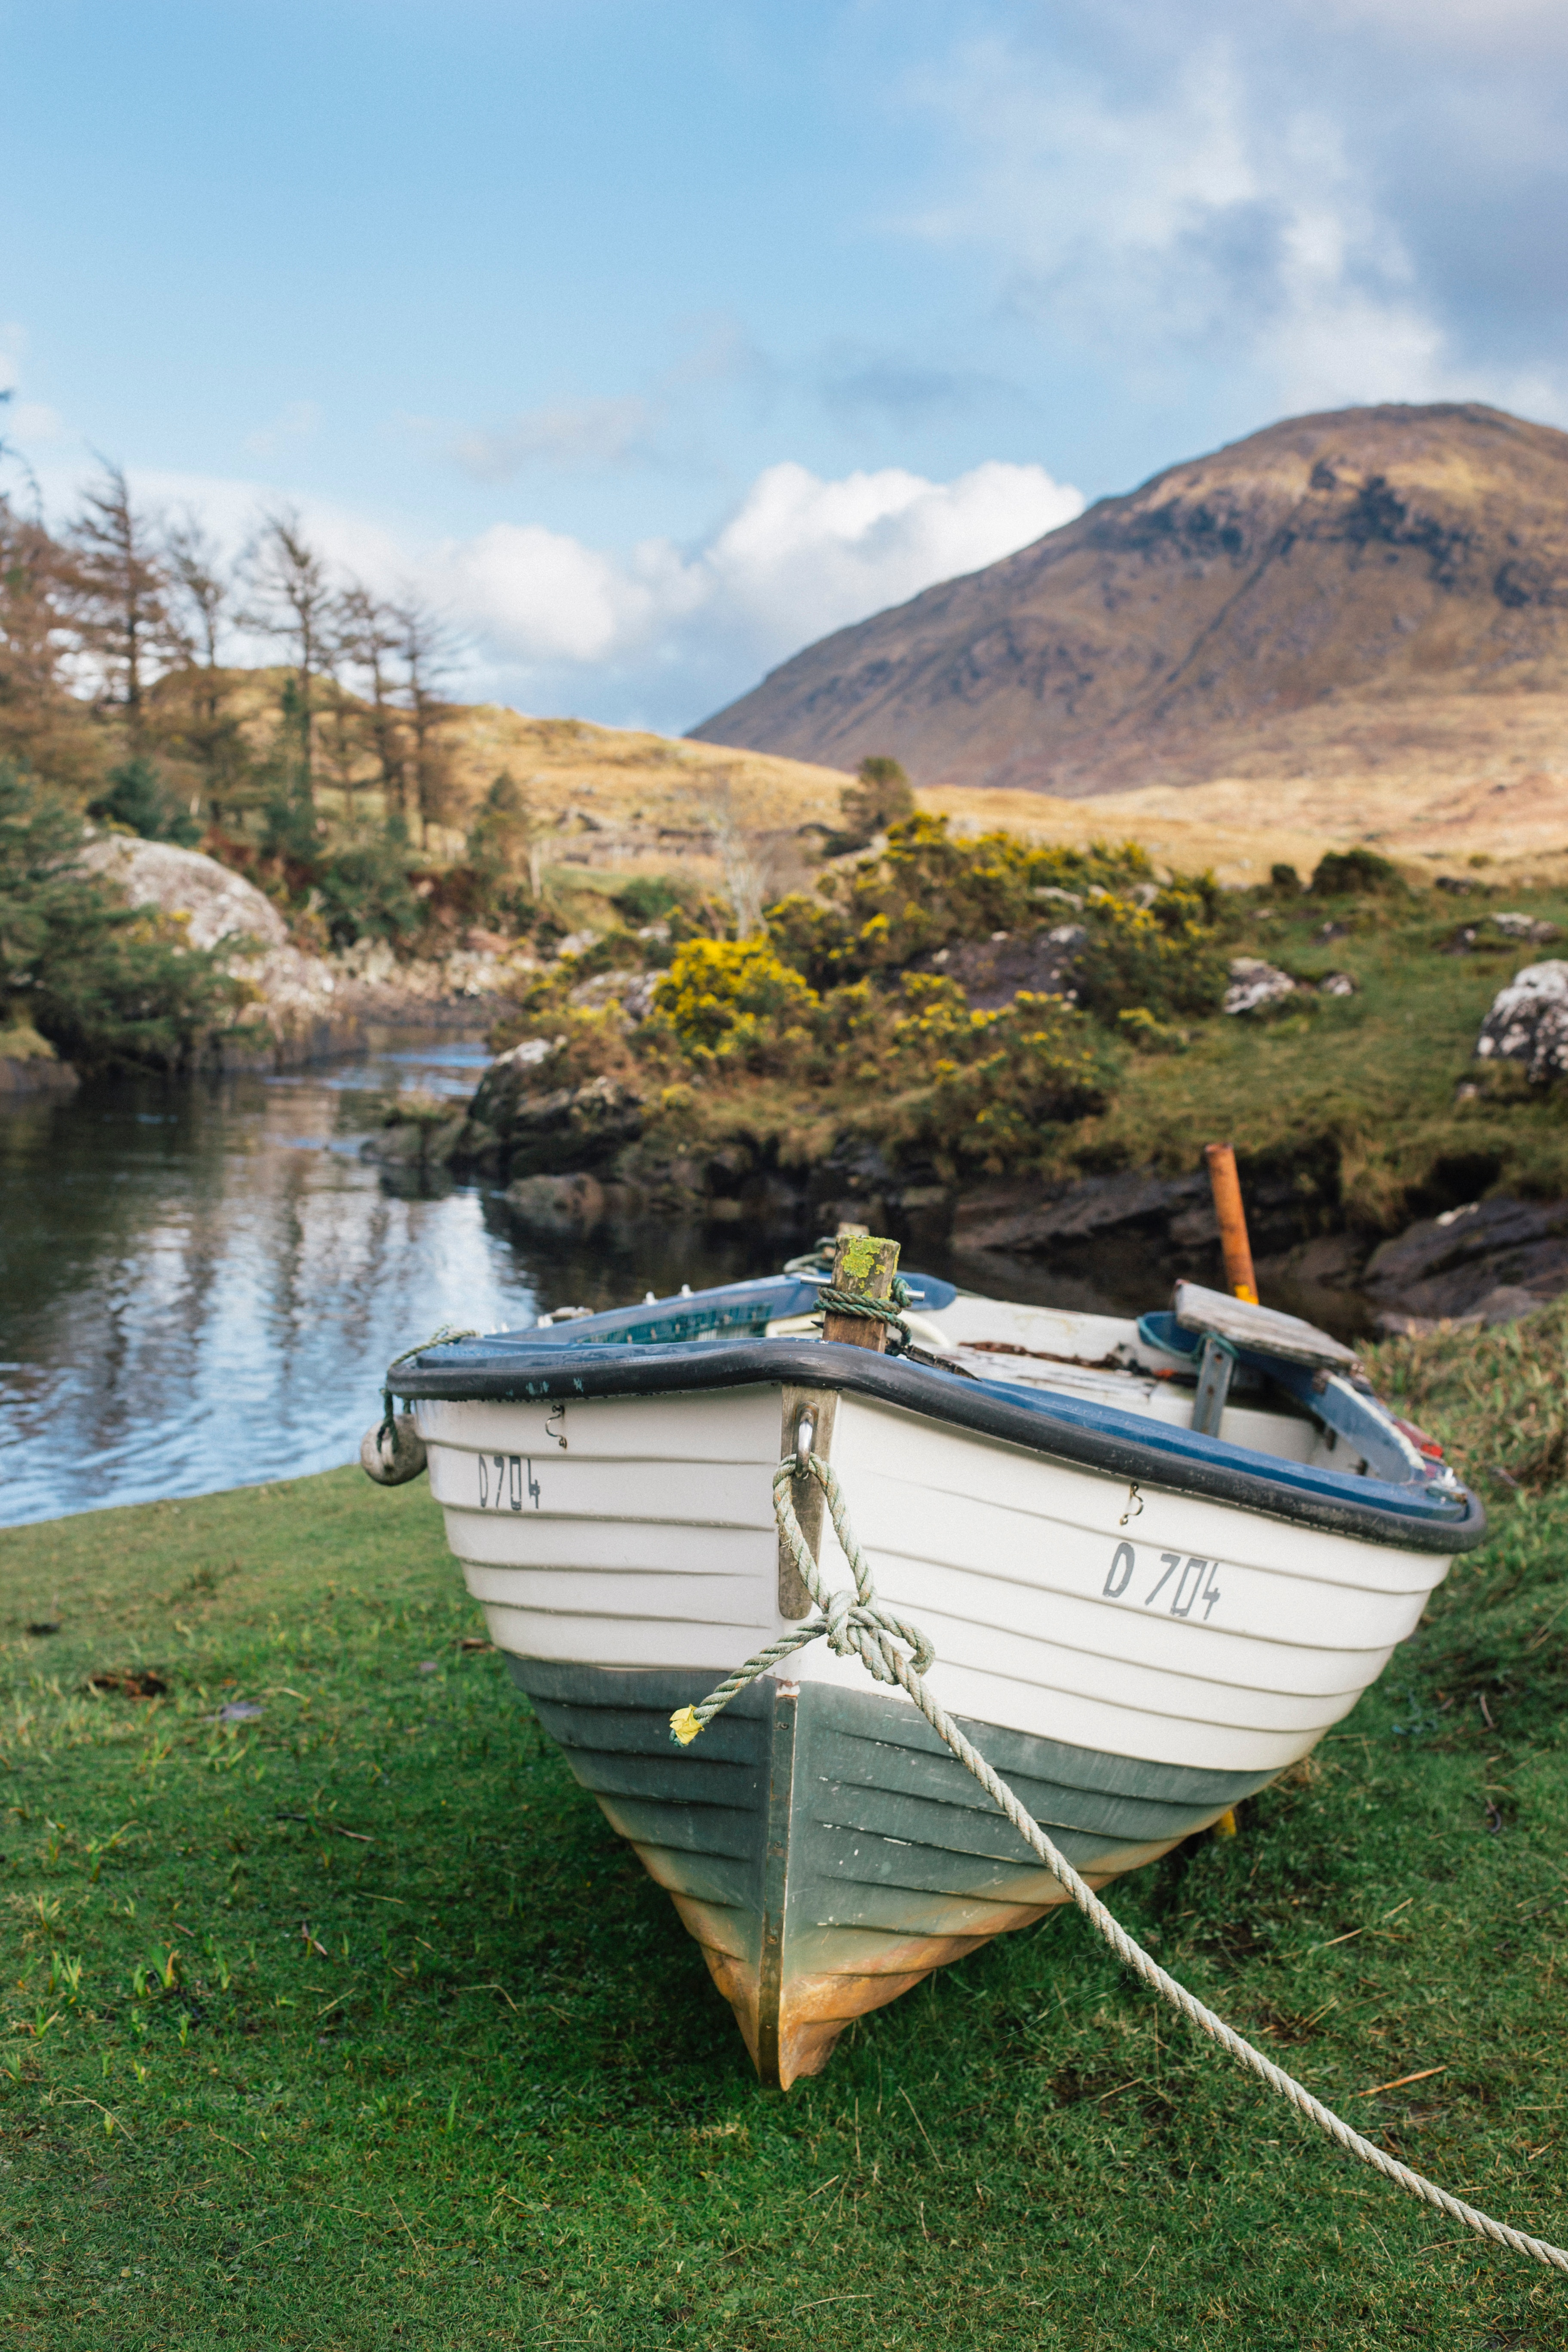 An old boat with shiplap on the sides careened on a grassy shore